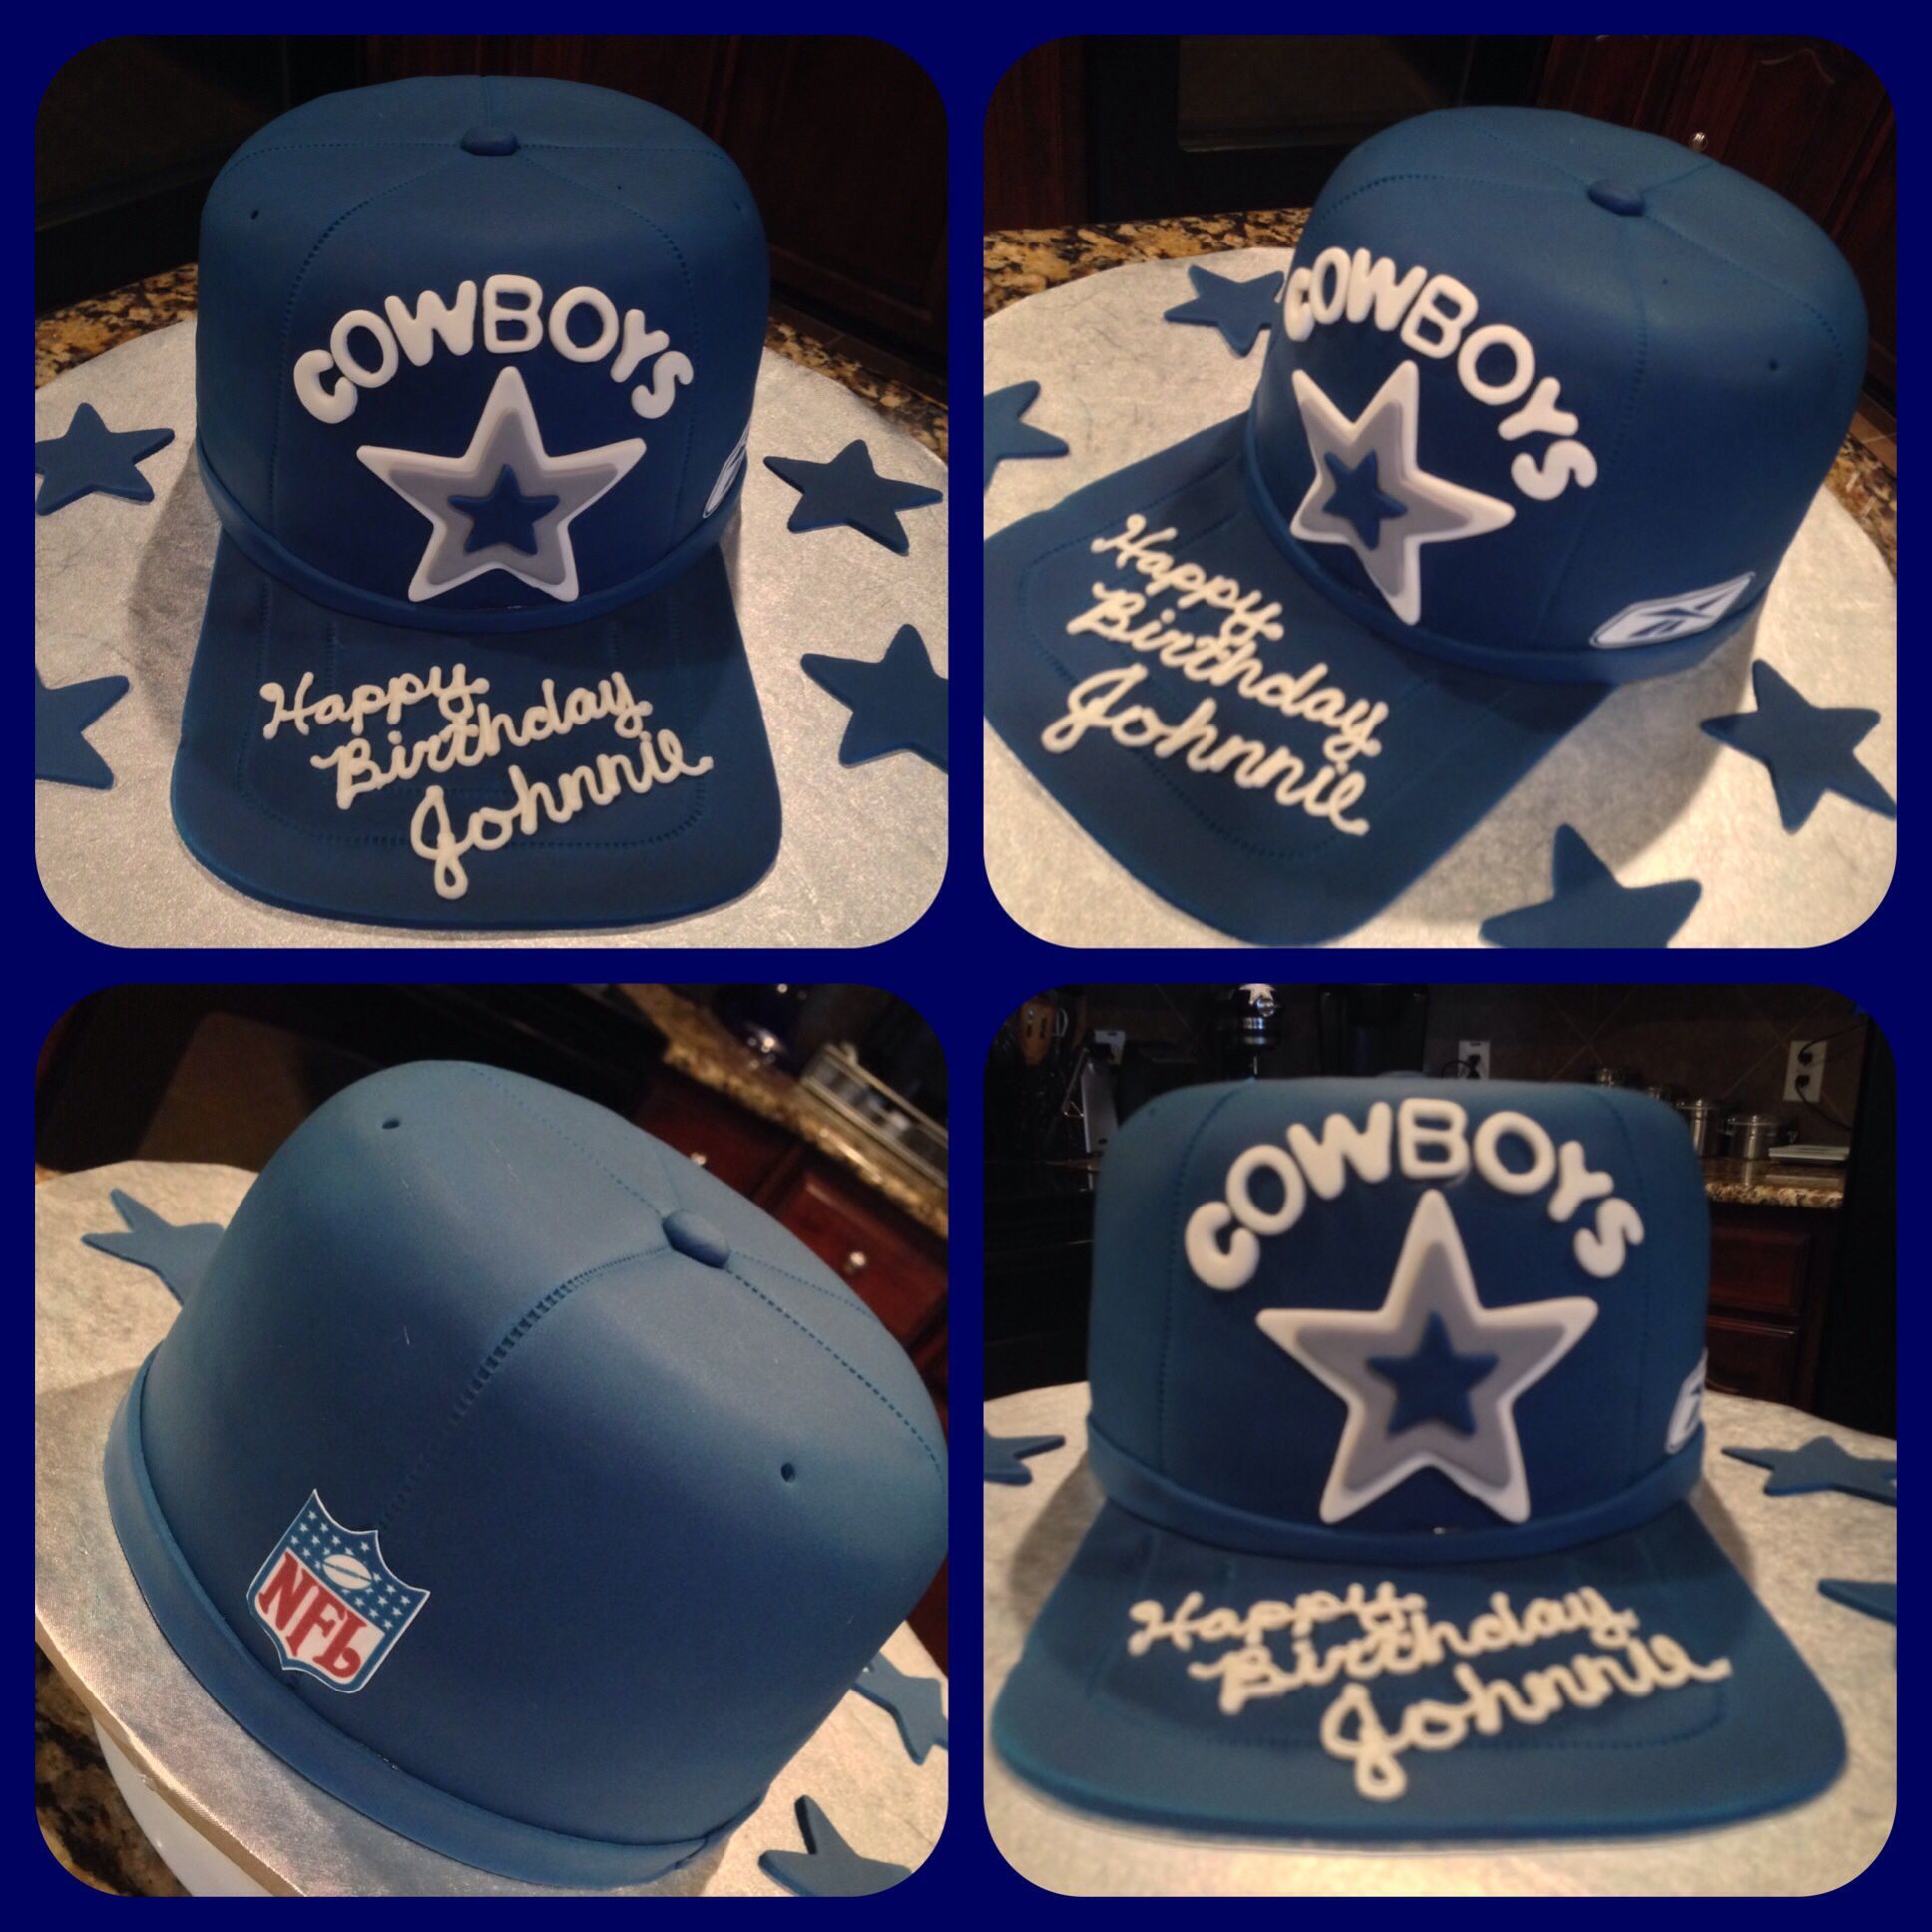 Dallas Cowboys baseball cap! #GO COWBOYS!!! | Custom Cakes by Cake ...